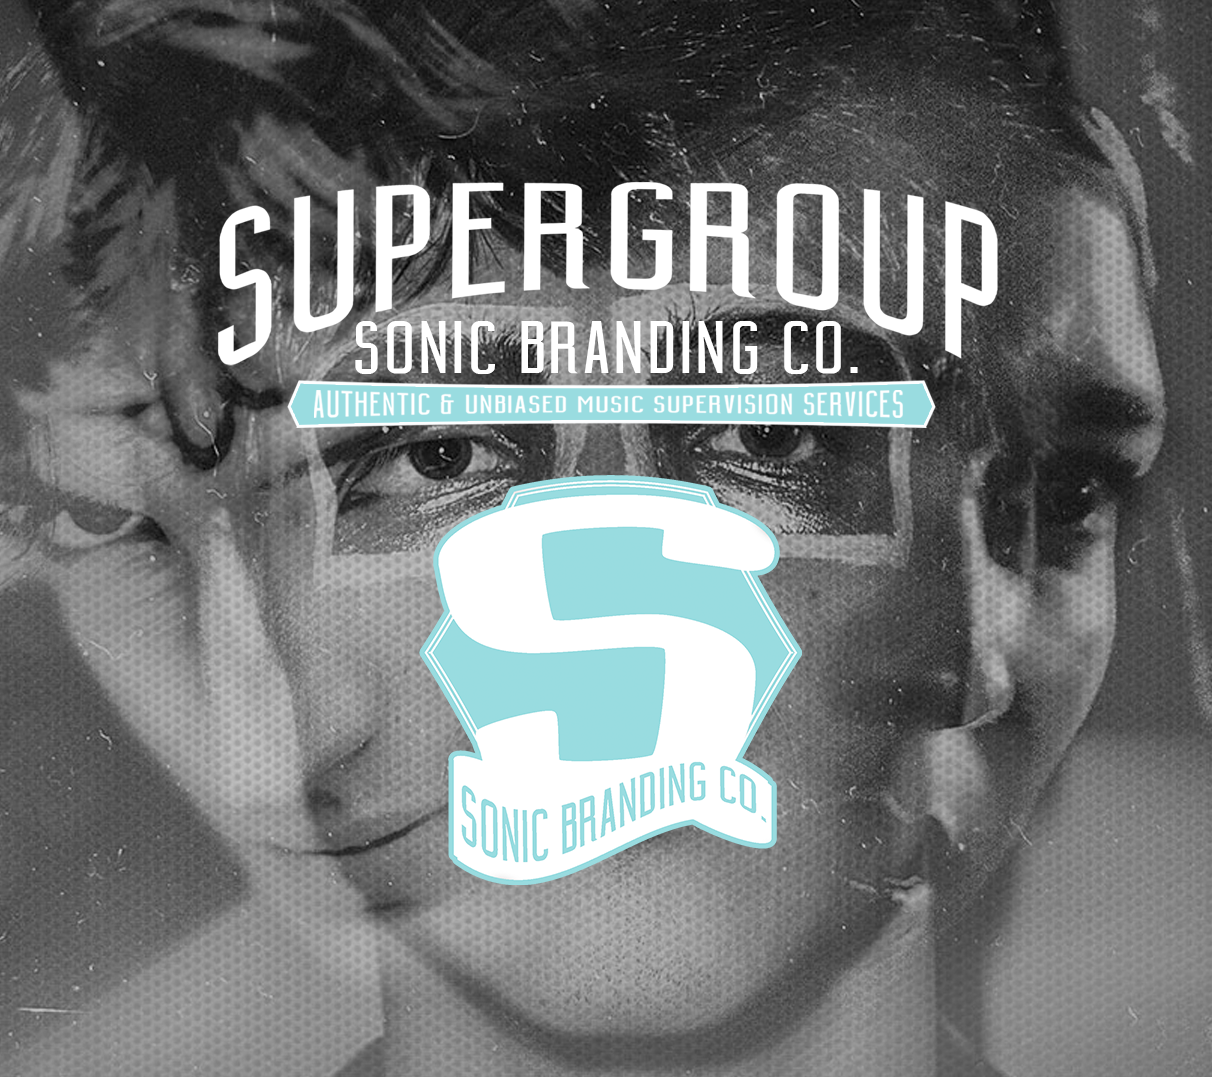 SUPERGROUP-coverB.png